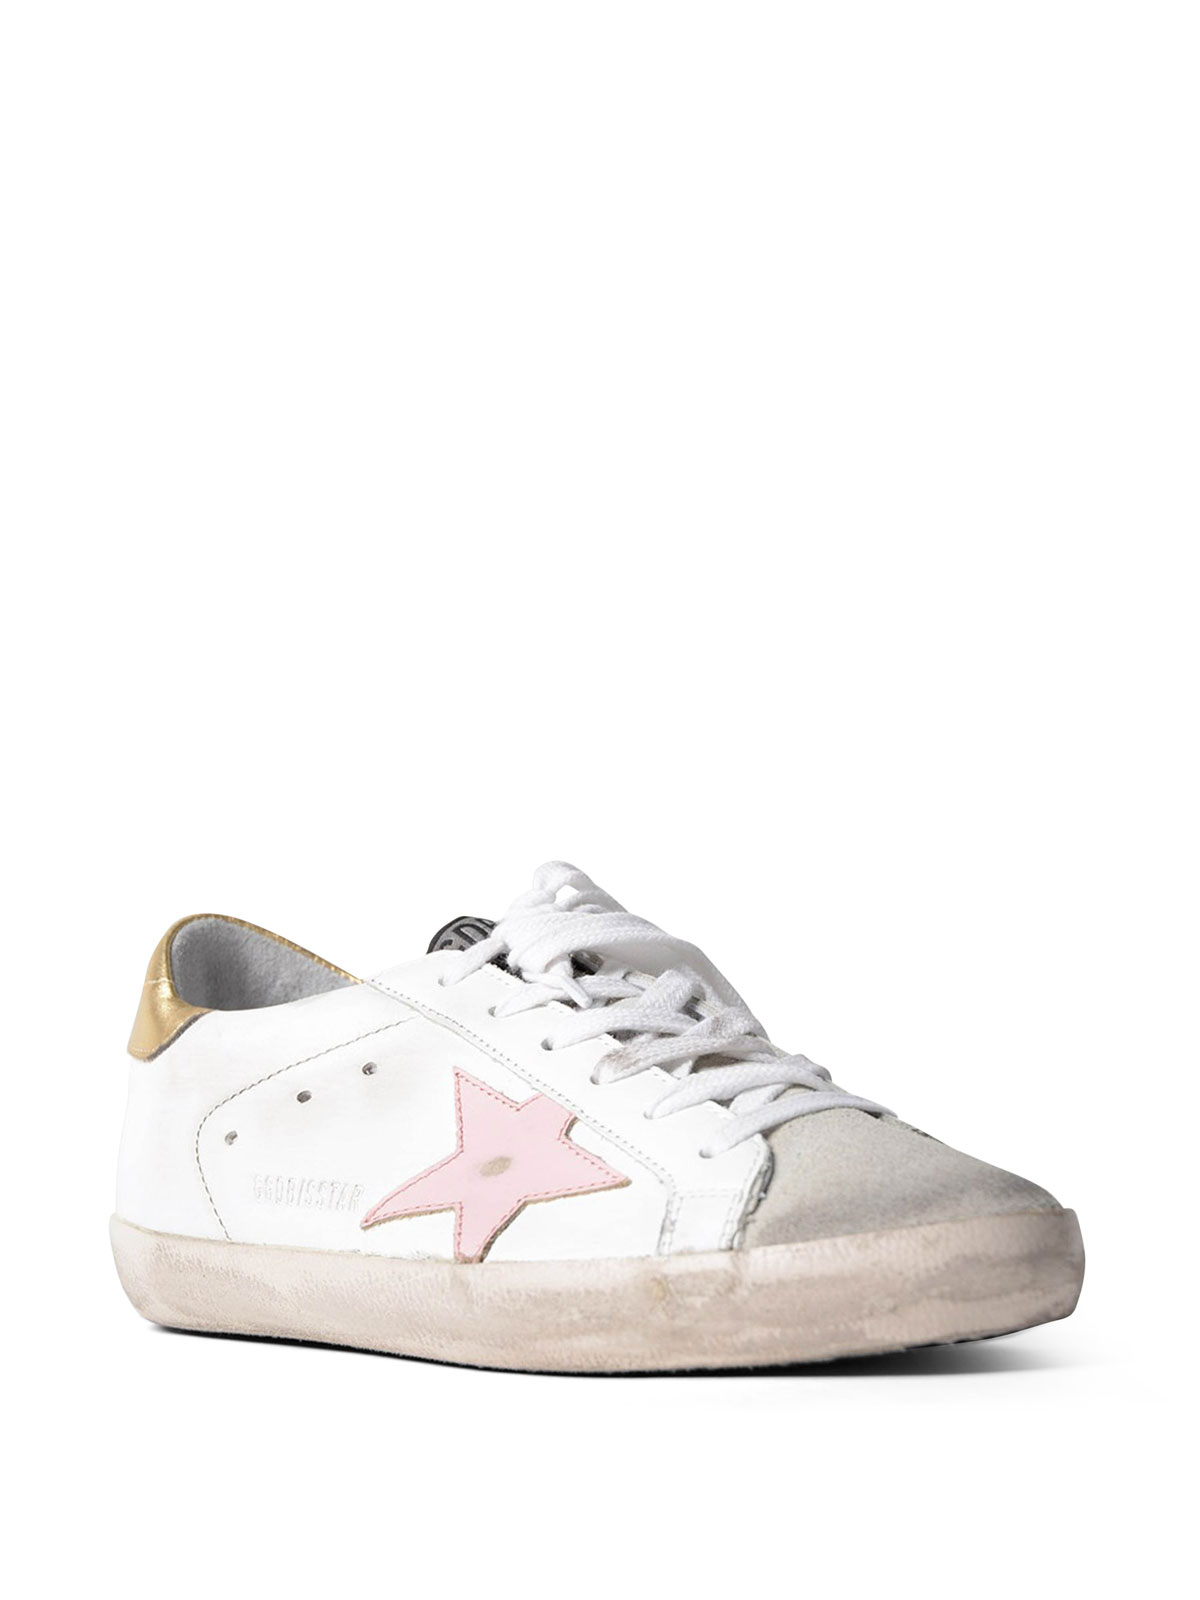 los angeles 8c993 dc29d Golden Goose - Sneaker Superstar con stella rosa - sneakers ...